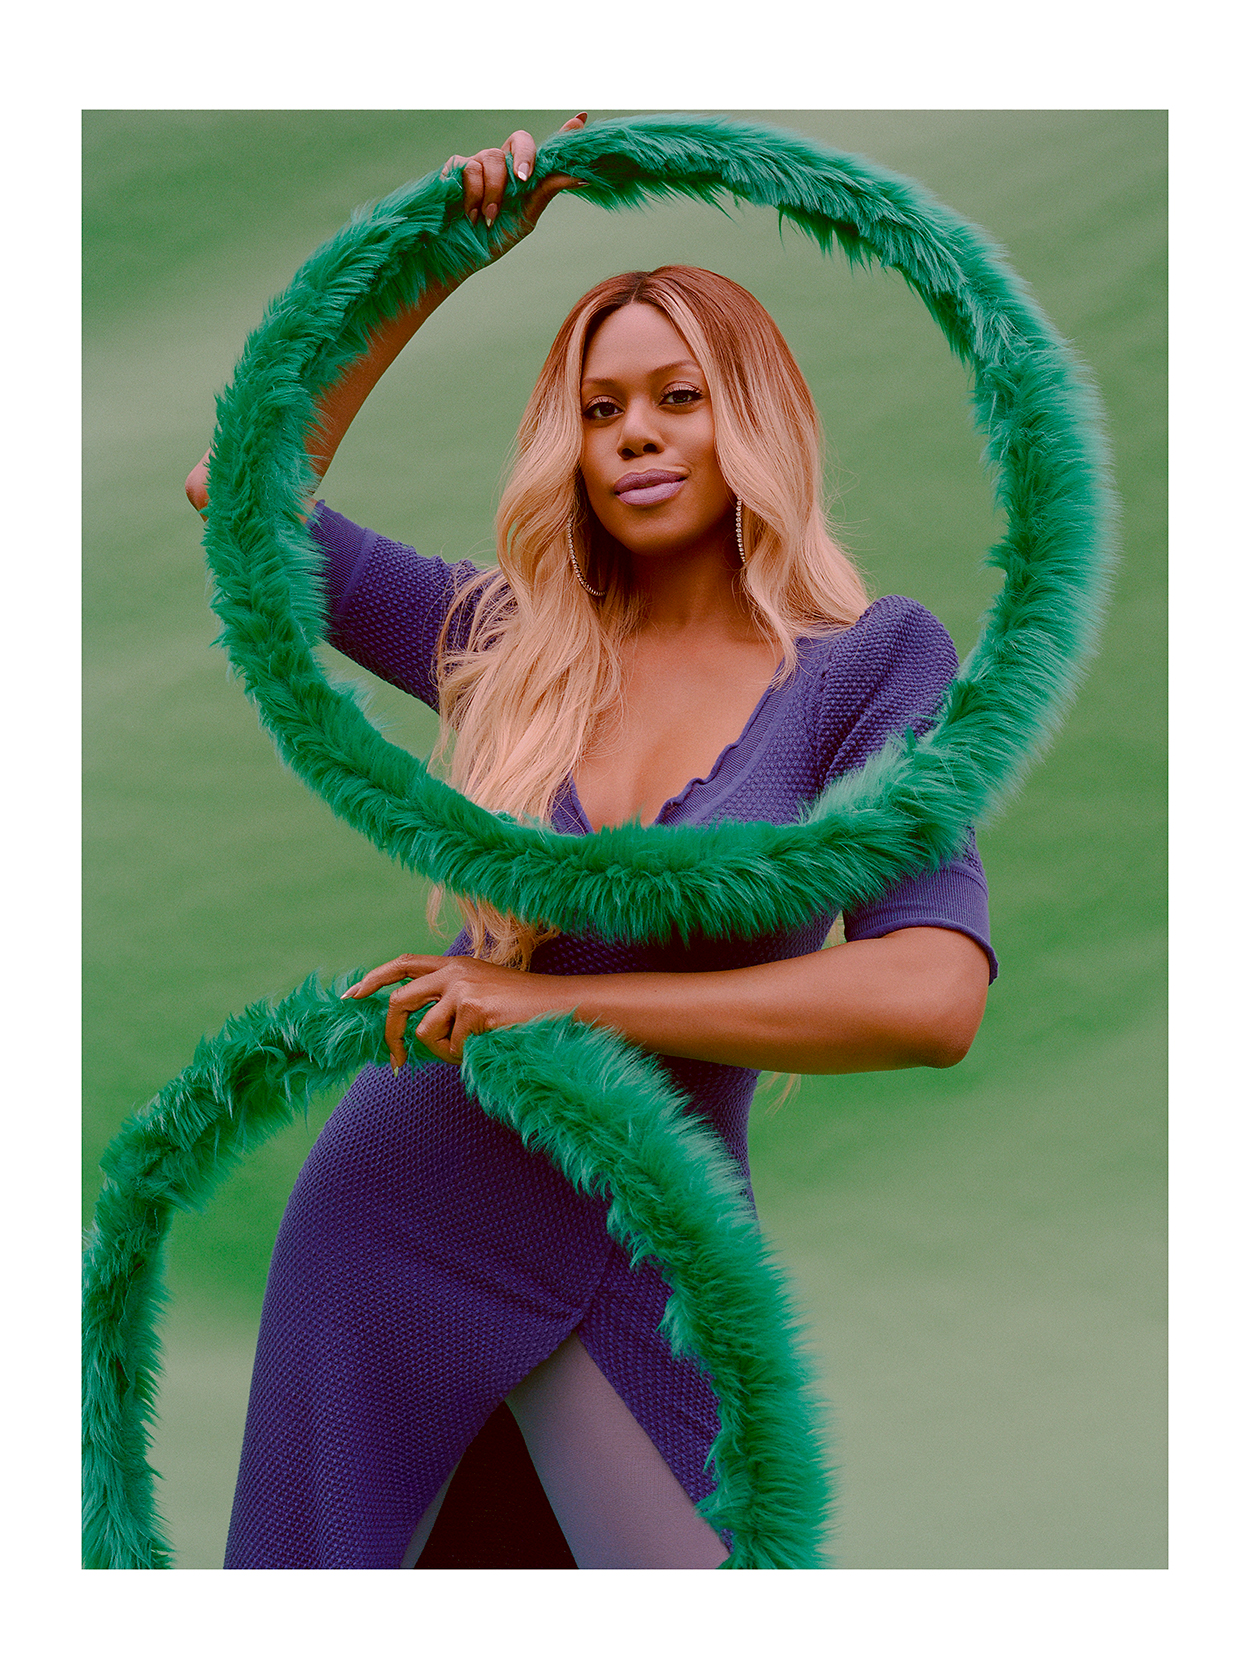 laverne cox for gay times